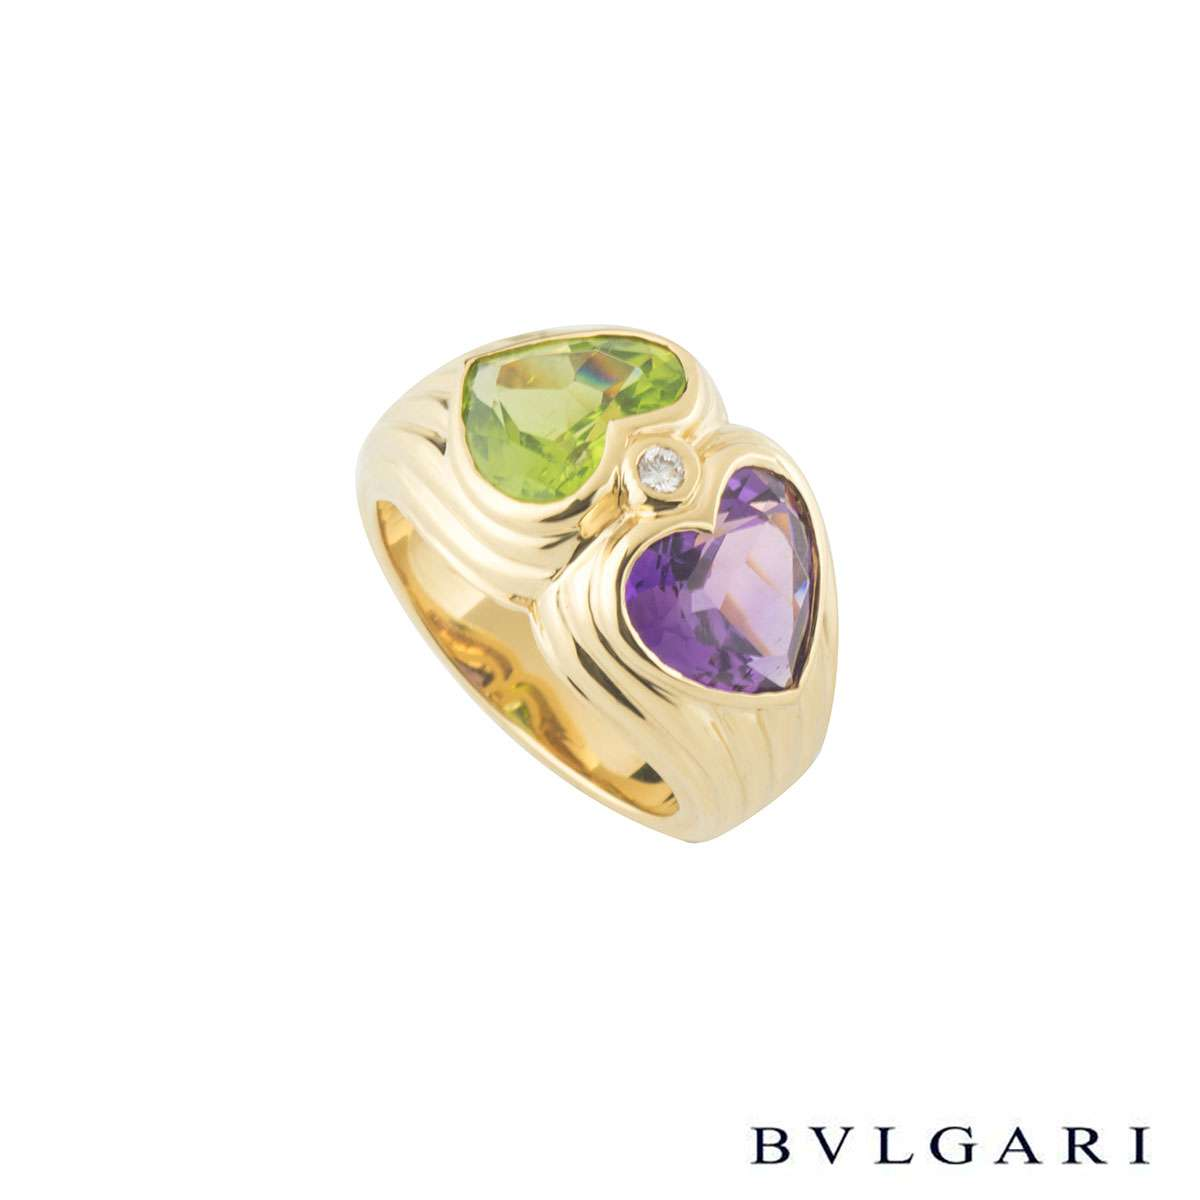 Bvlgari Doppio Peridot and Amethyst Ring